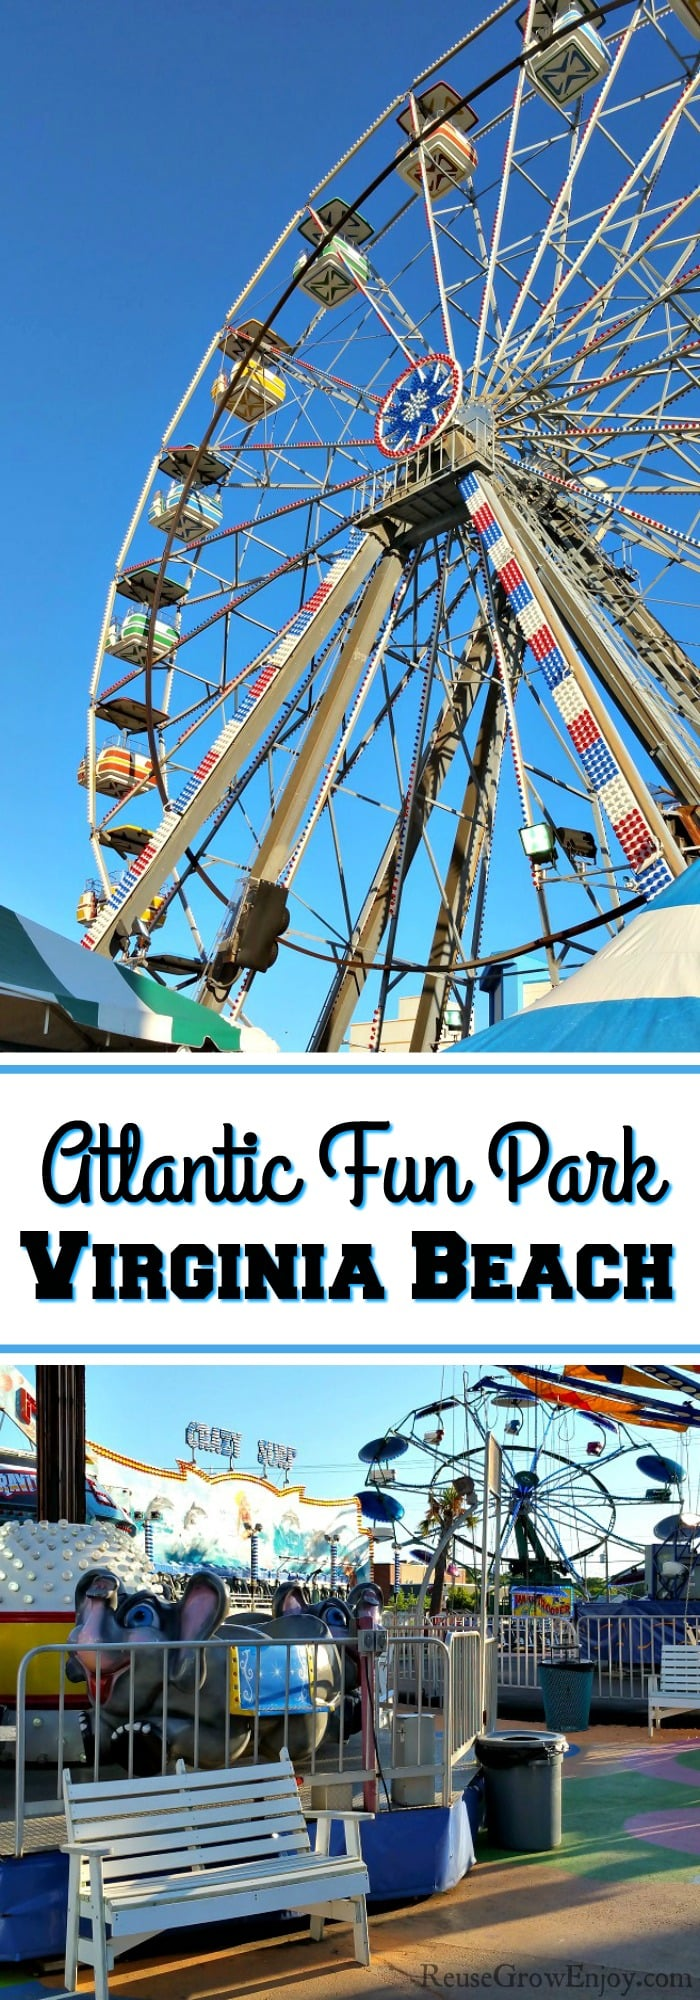 If you are headed to Virginia Beach with a family, you may want to add the Atlantic Fun Park to the visit list. It is a small park but packs a punch with what they have to offer from rides, games and foods!